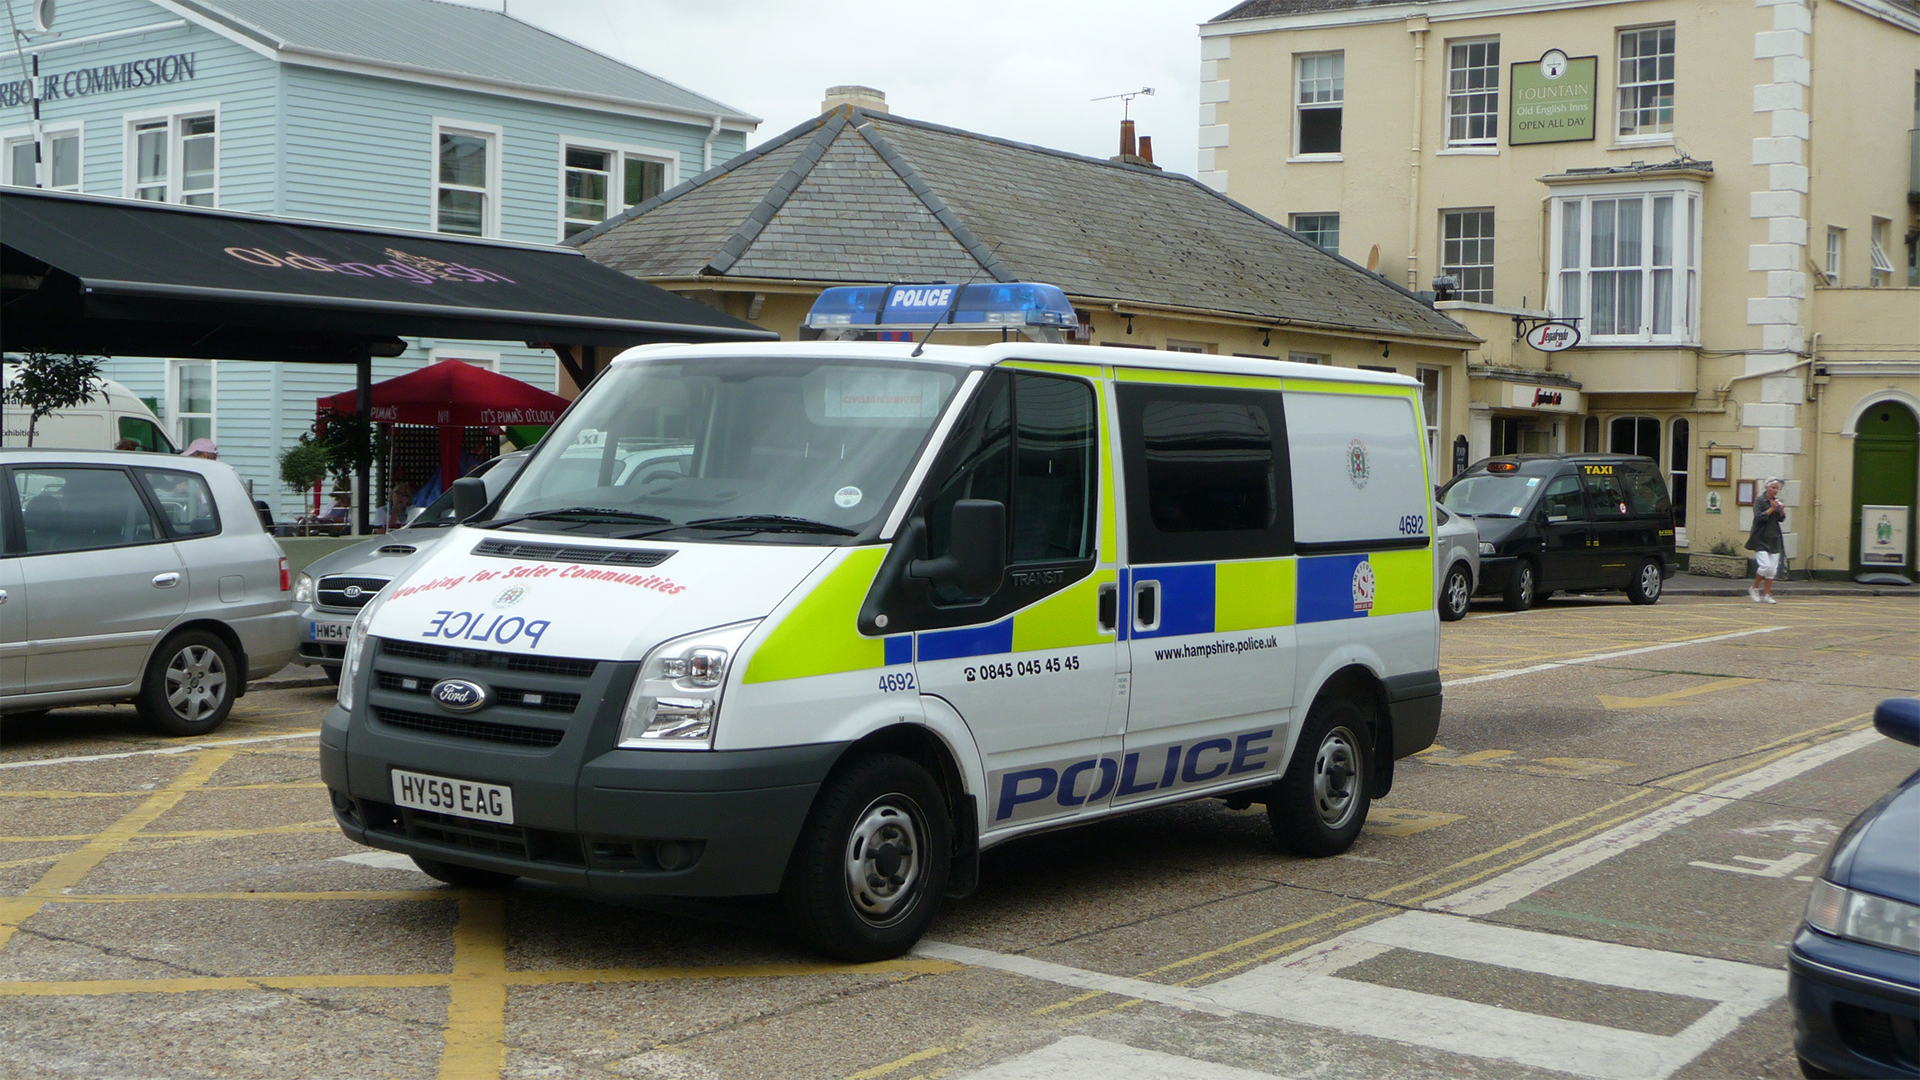 Constabulary saves time and money with tech